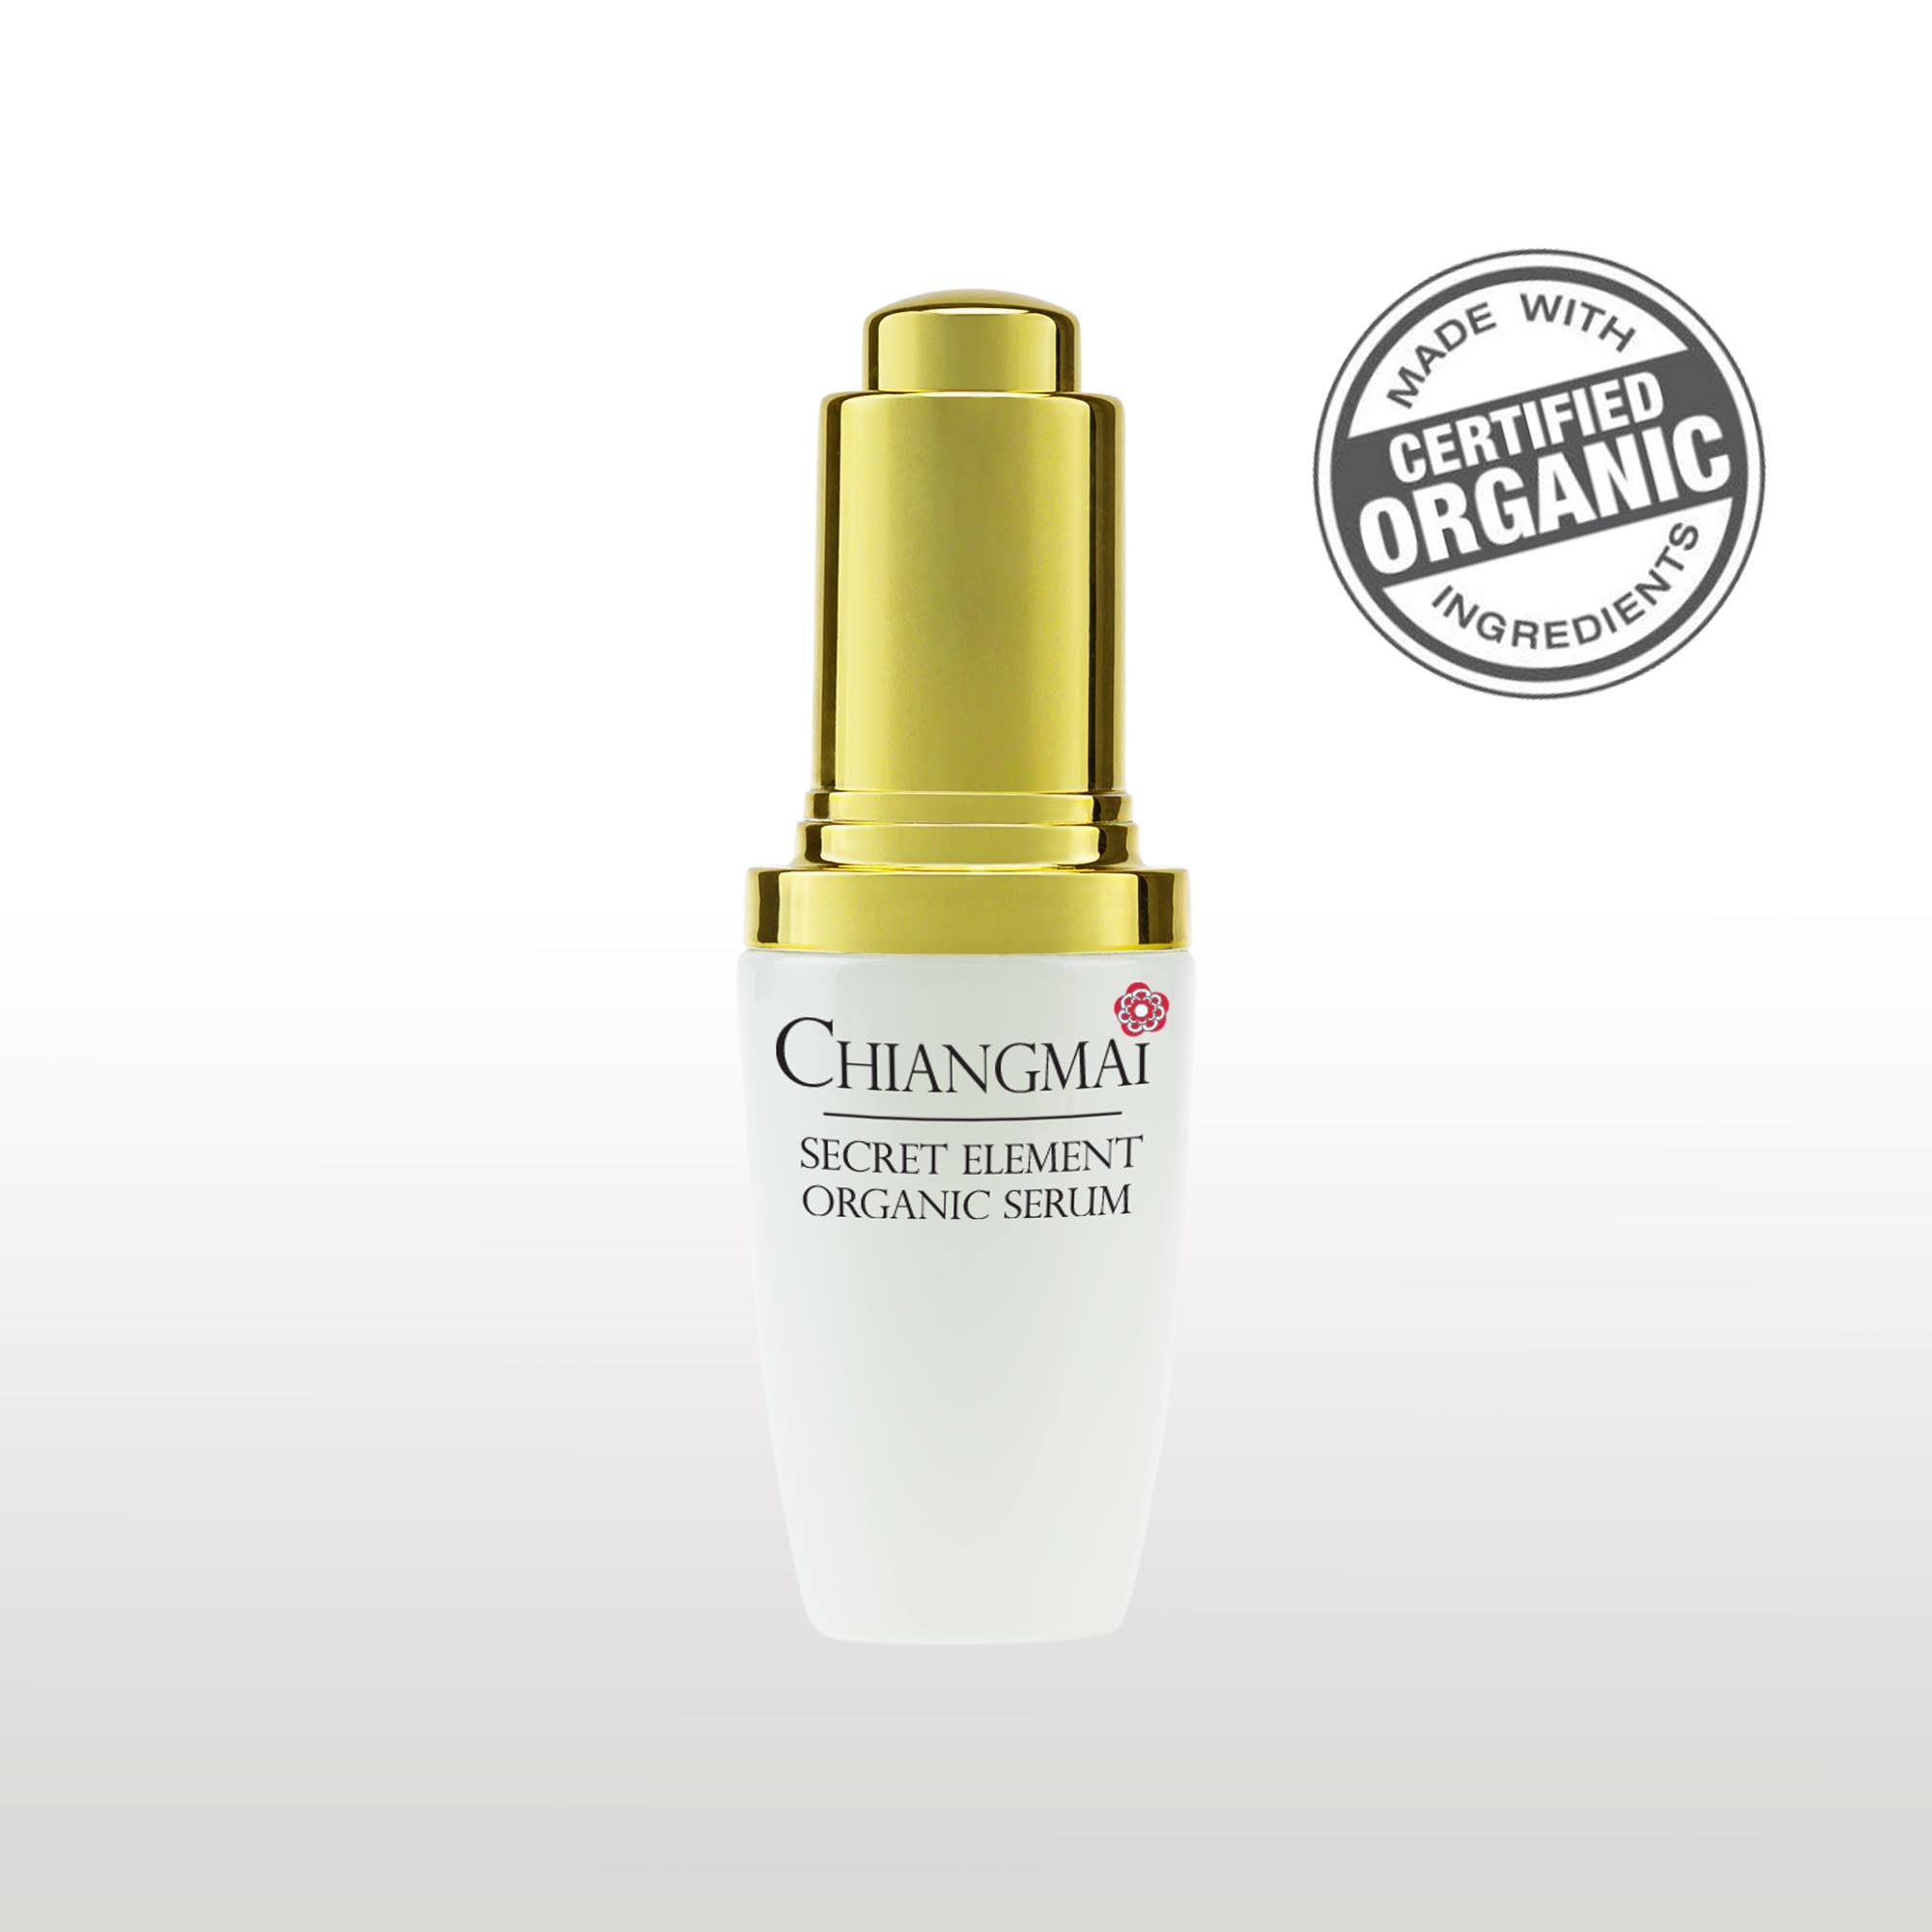 ChiangMai Secret Element Organic Serum